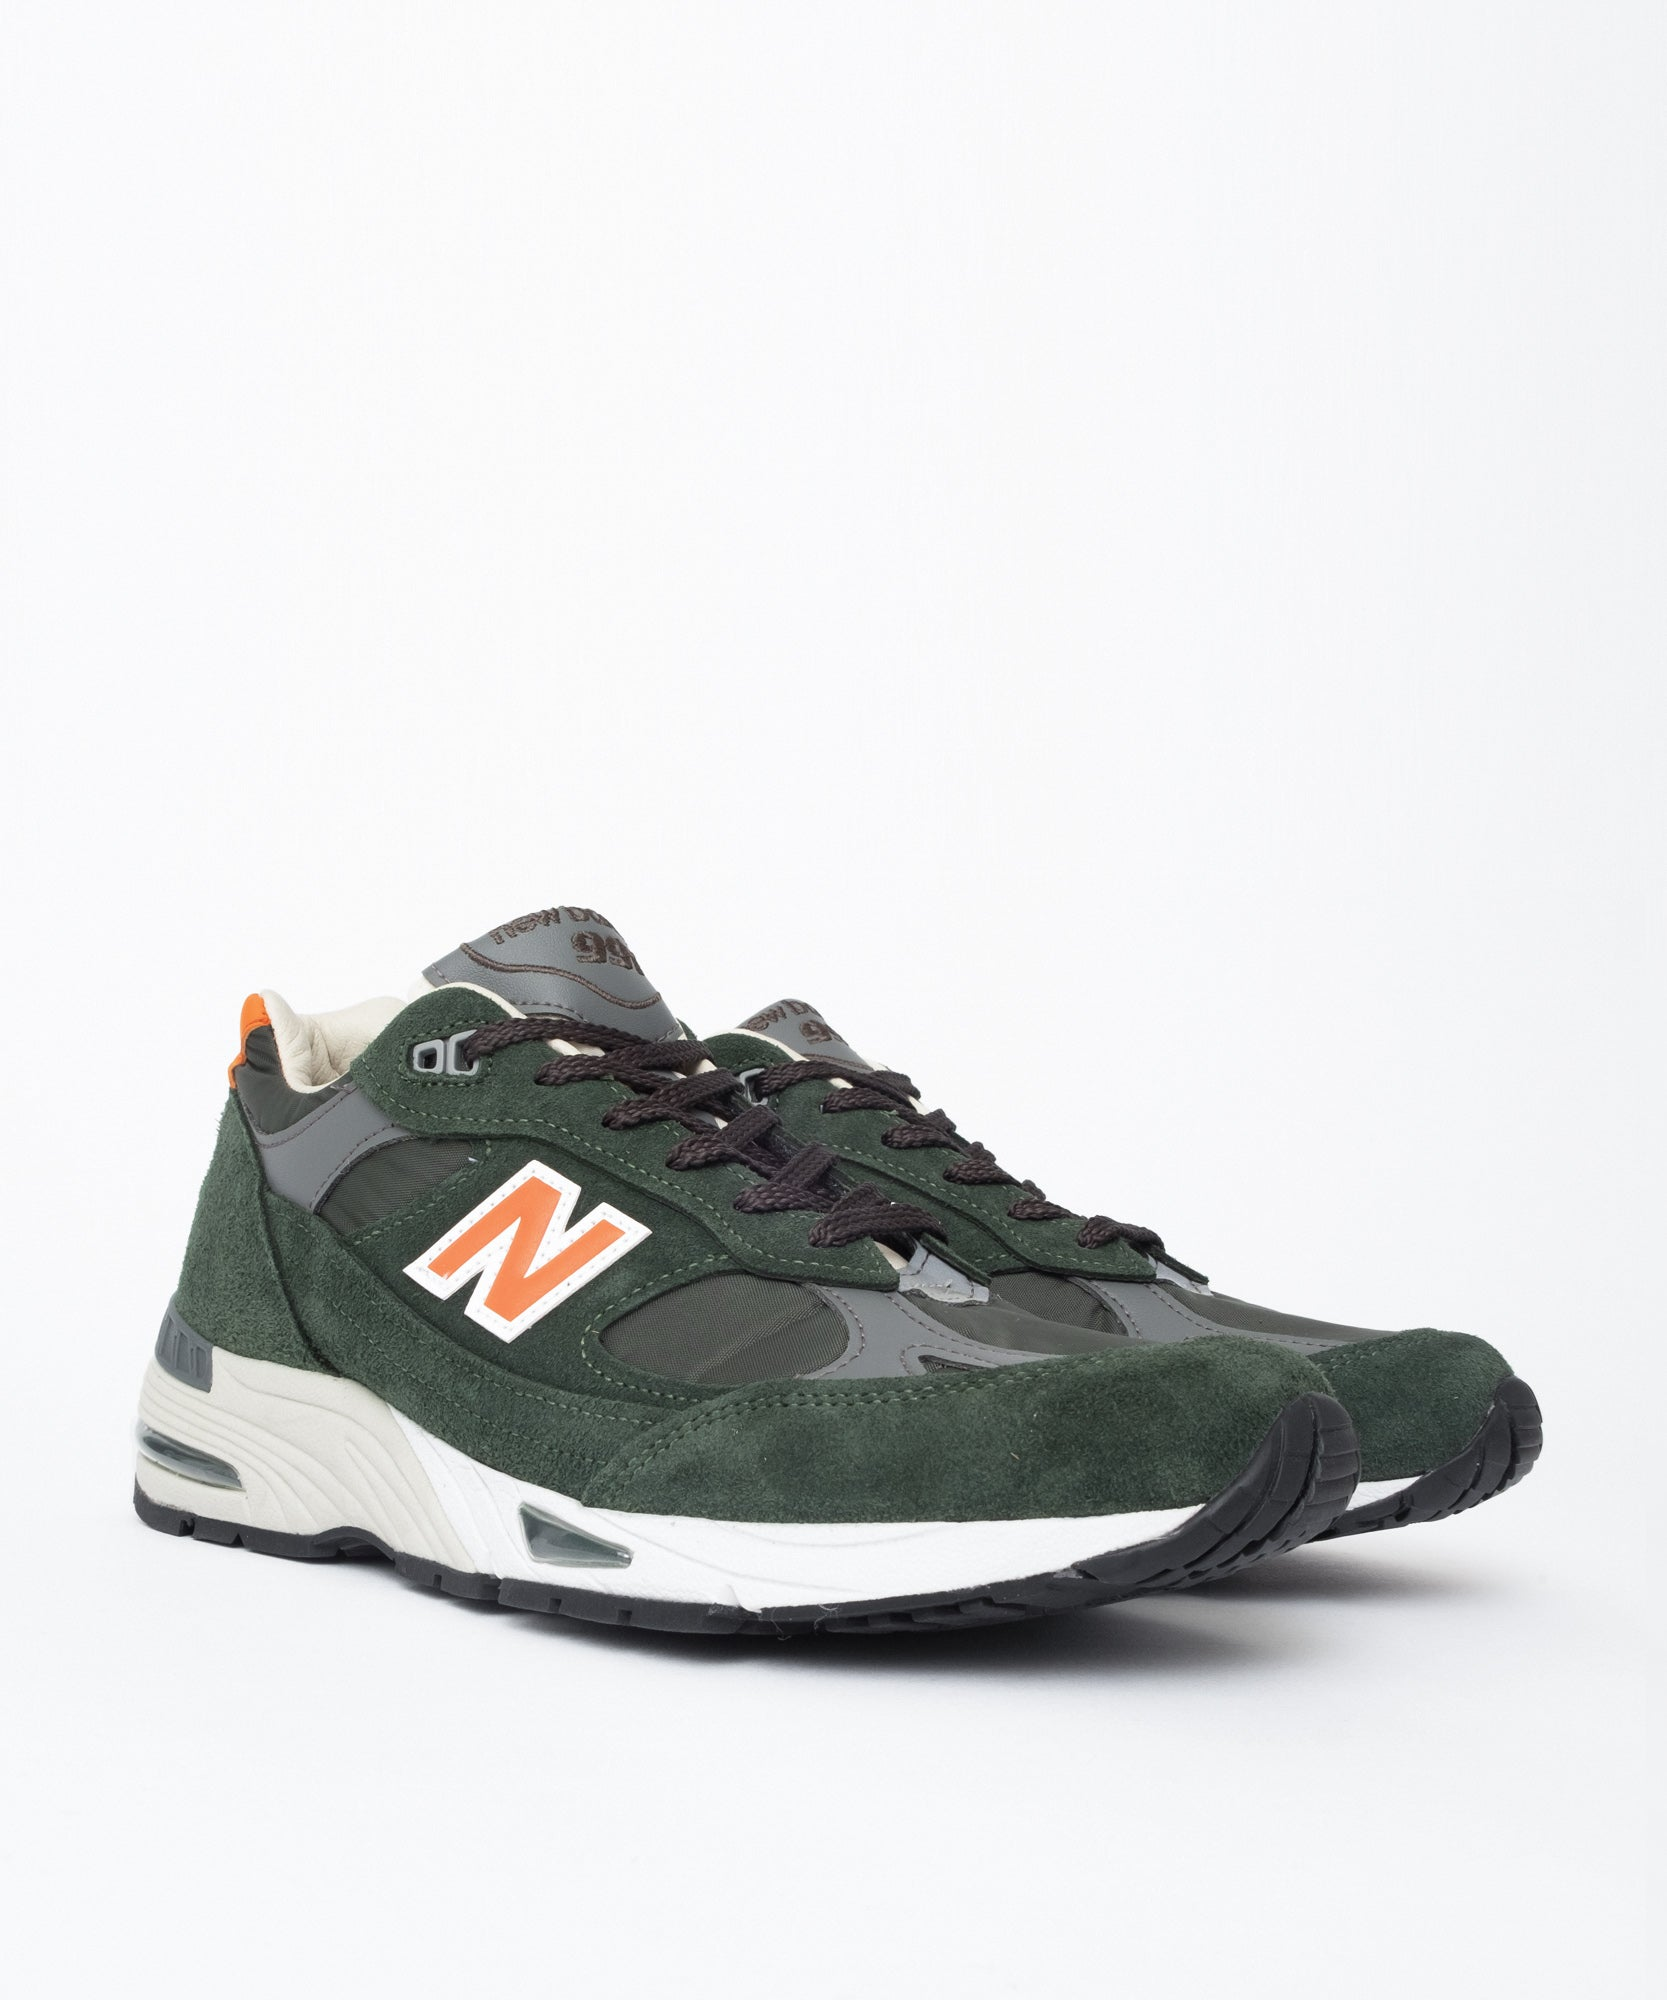 d795d9a7deffd NewBalanceM991TNF(Green/Orange)